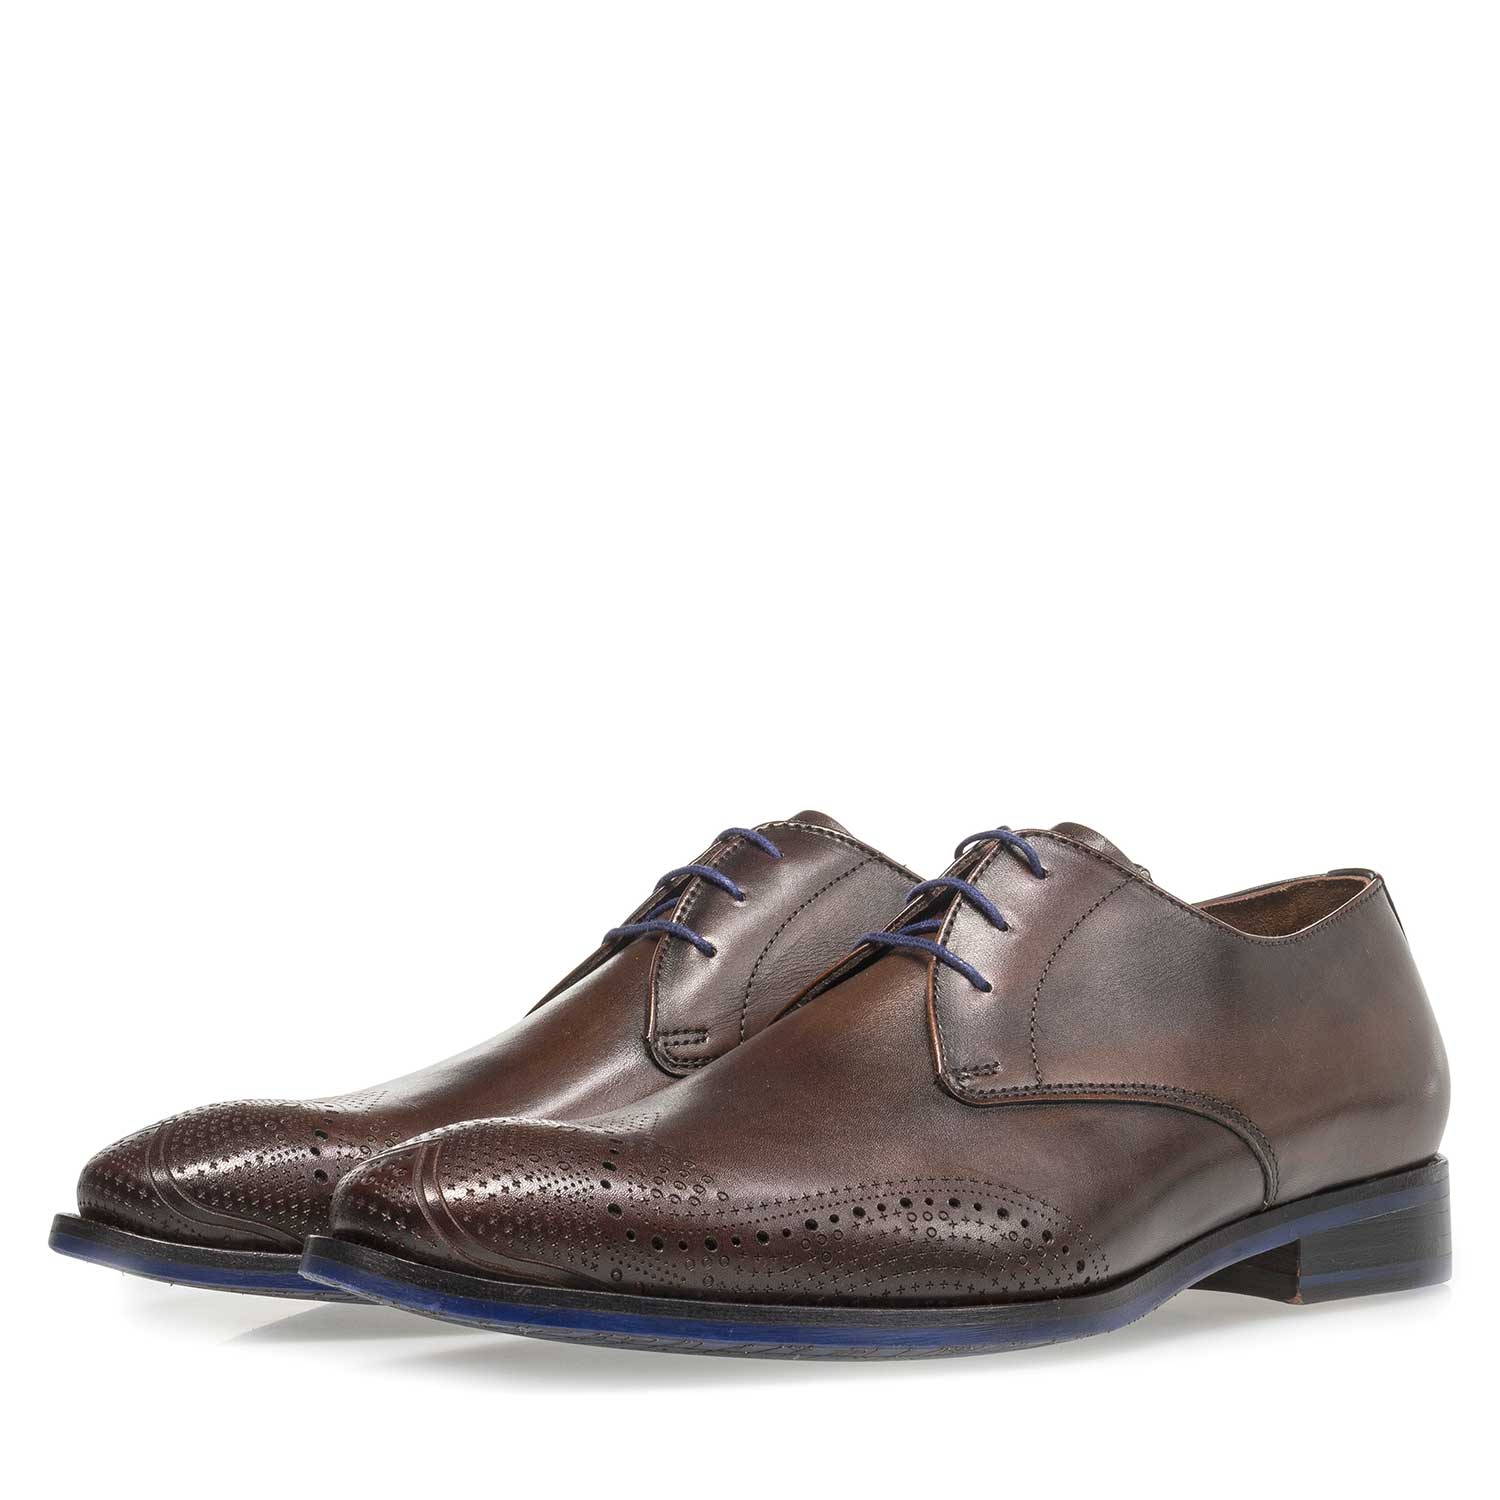 18175/02 - Dark brown calf leather lace shoe